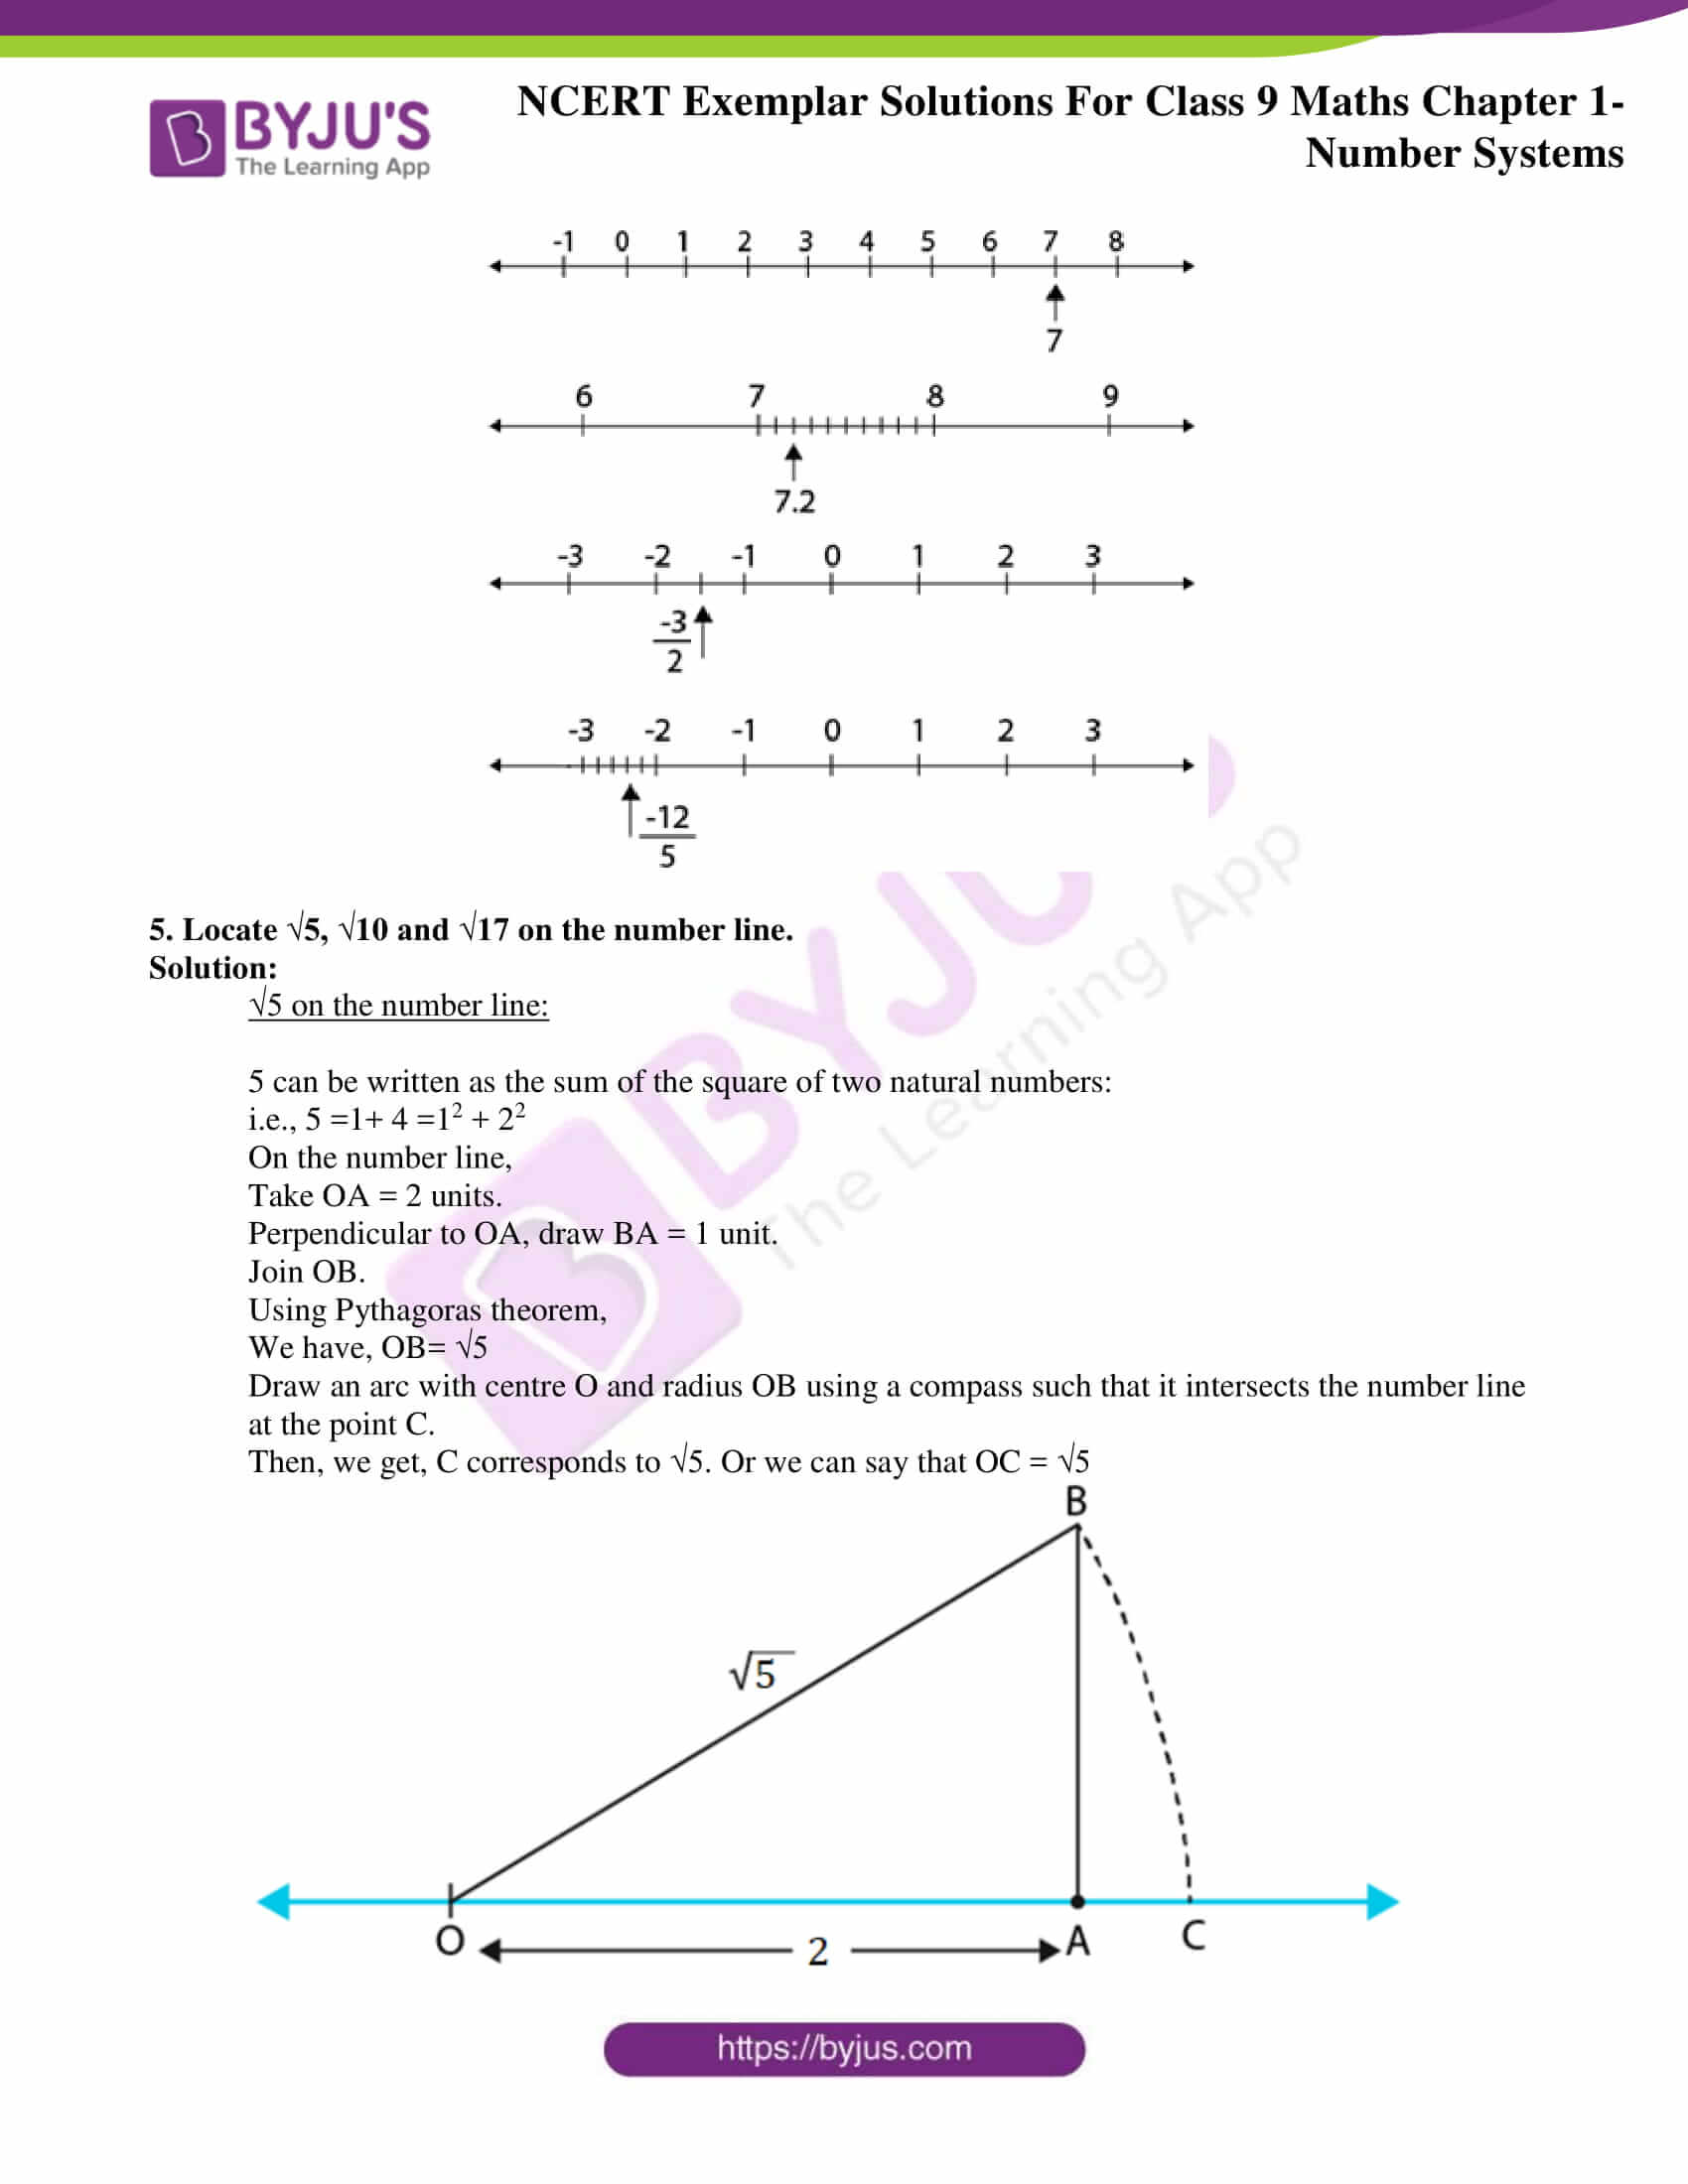 NCERT Exemplar Solutions for Class 9 Maths Chapter 1 09